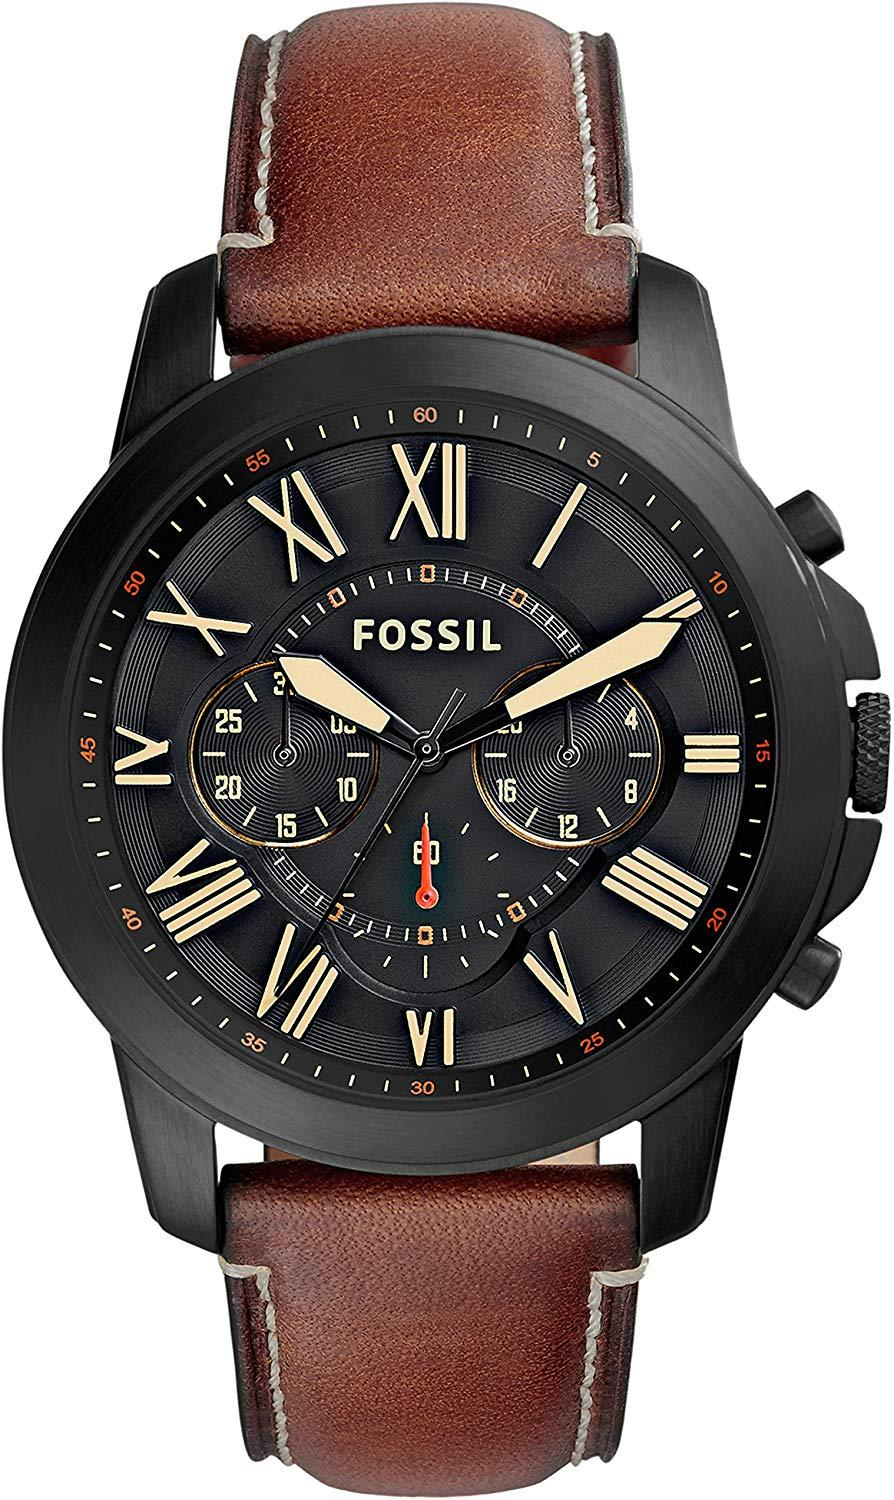 Fossil FS5241 Chronograph best Fossil Watch